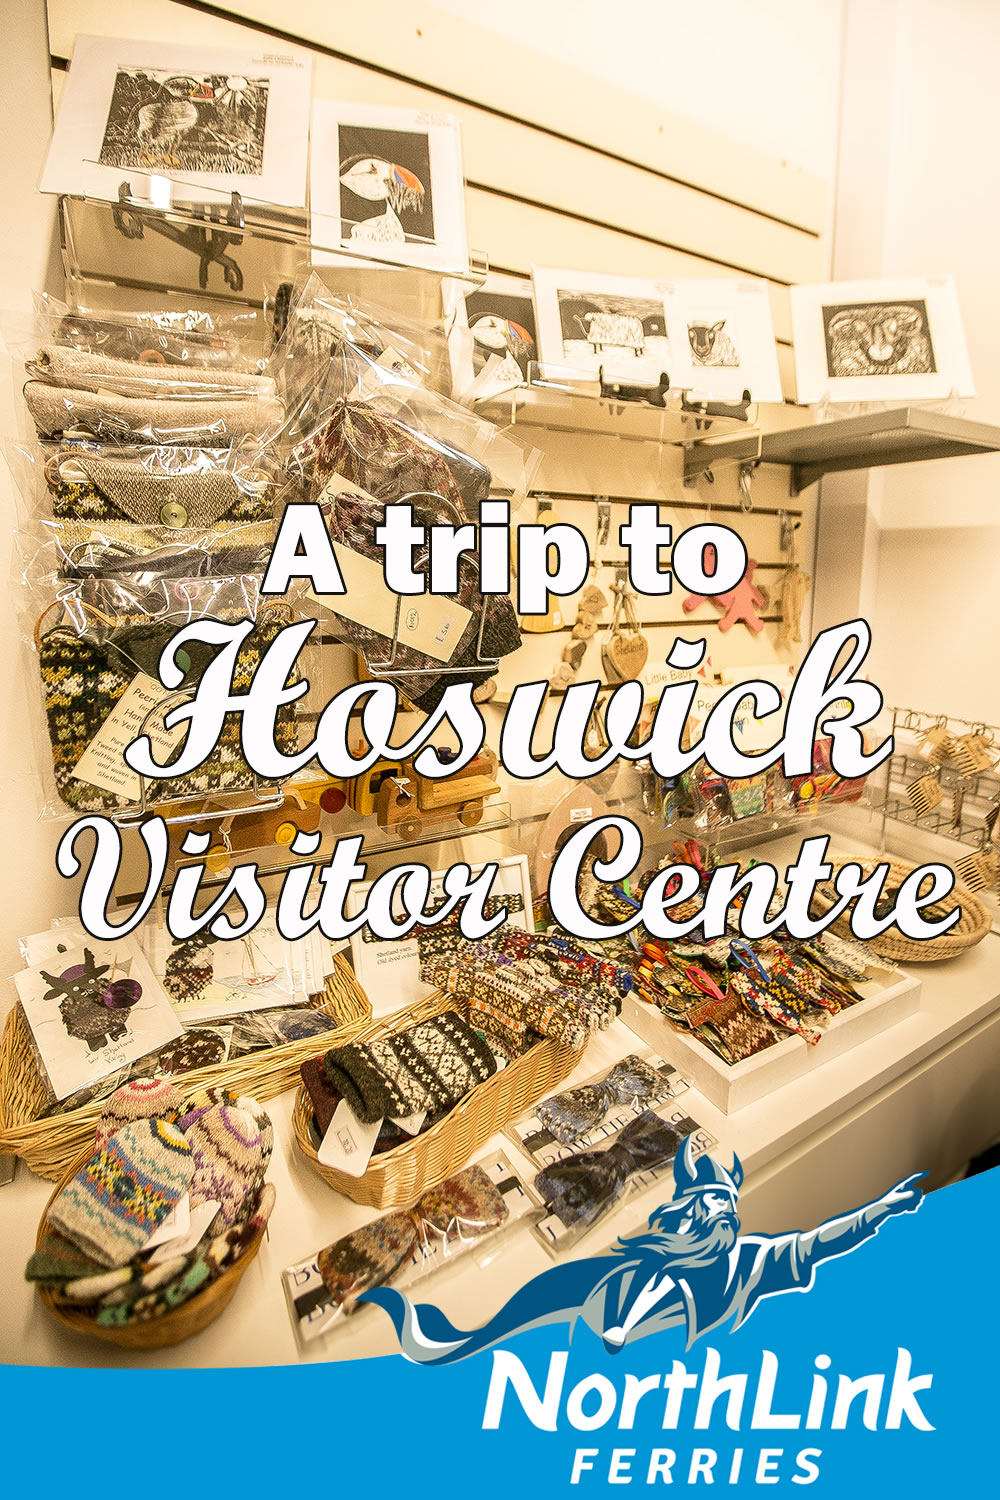 A trip to Hoswick Visitor Centre